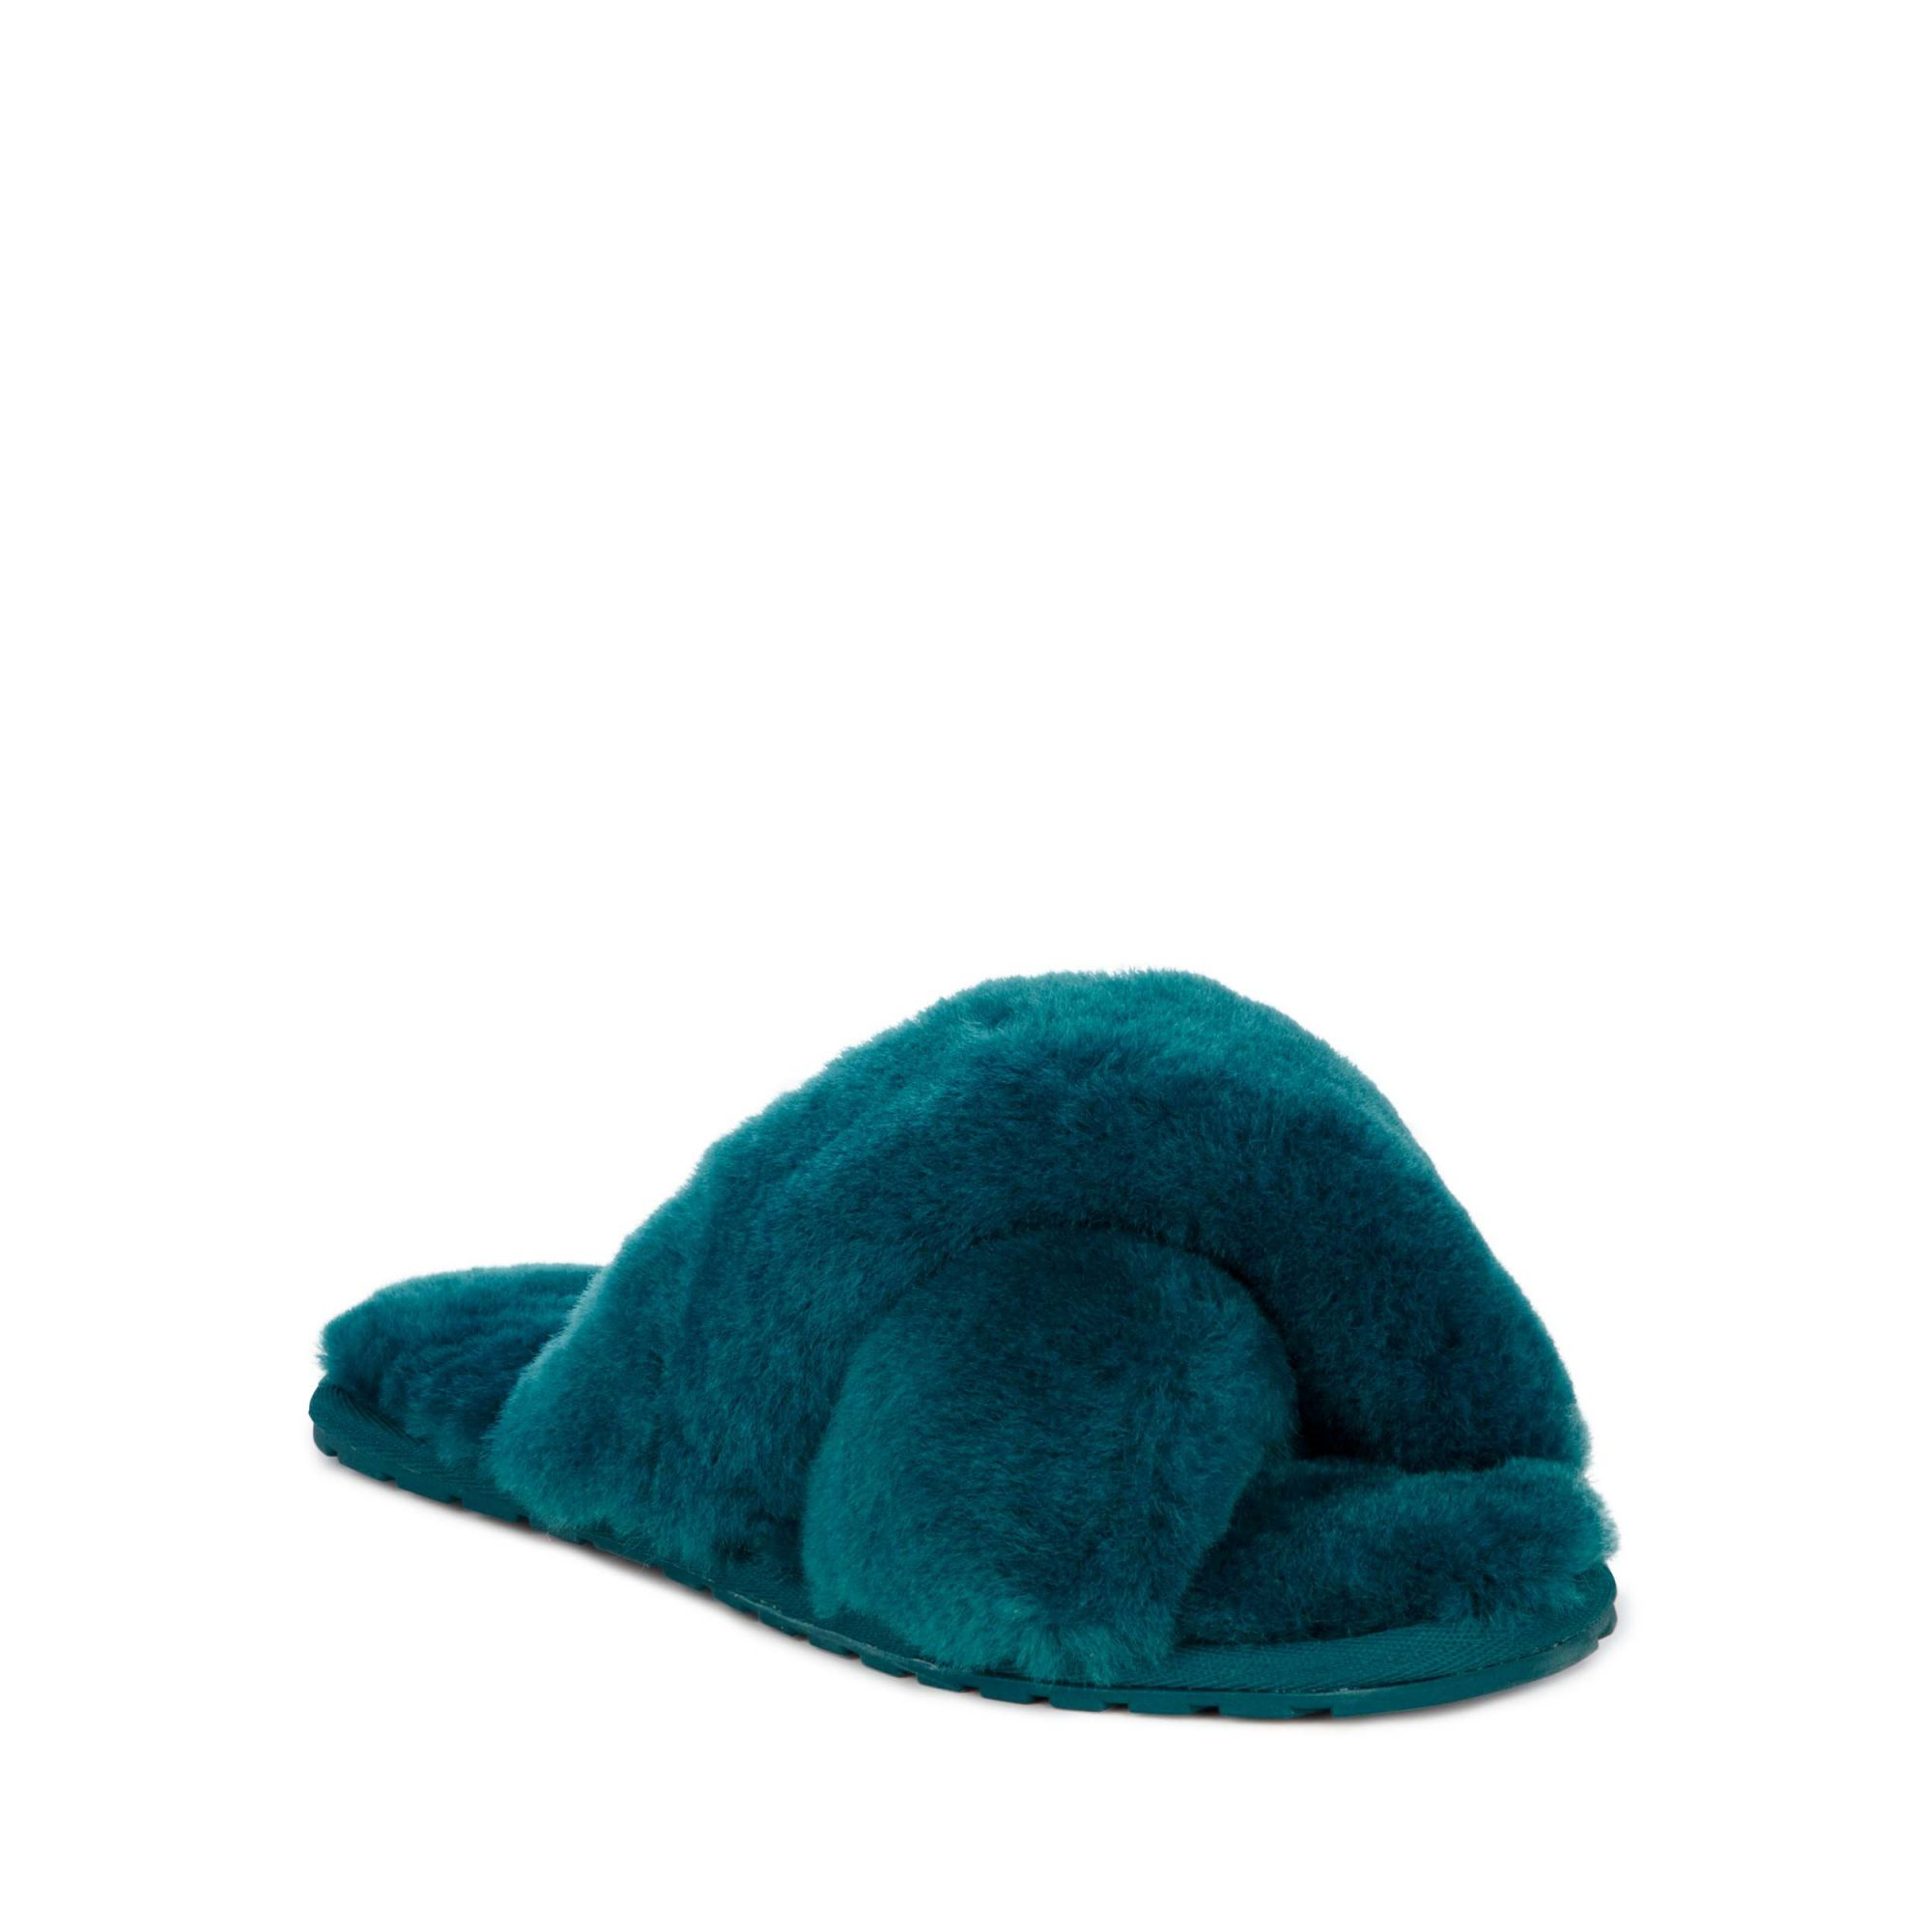 Emu petrolejové pantofle Mayberry Teal/Turquoise